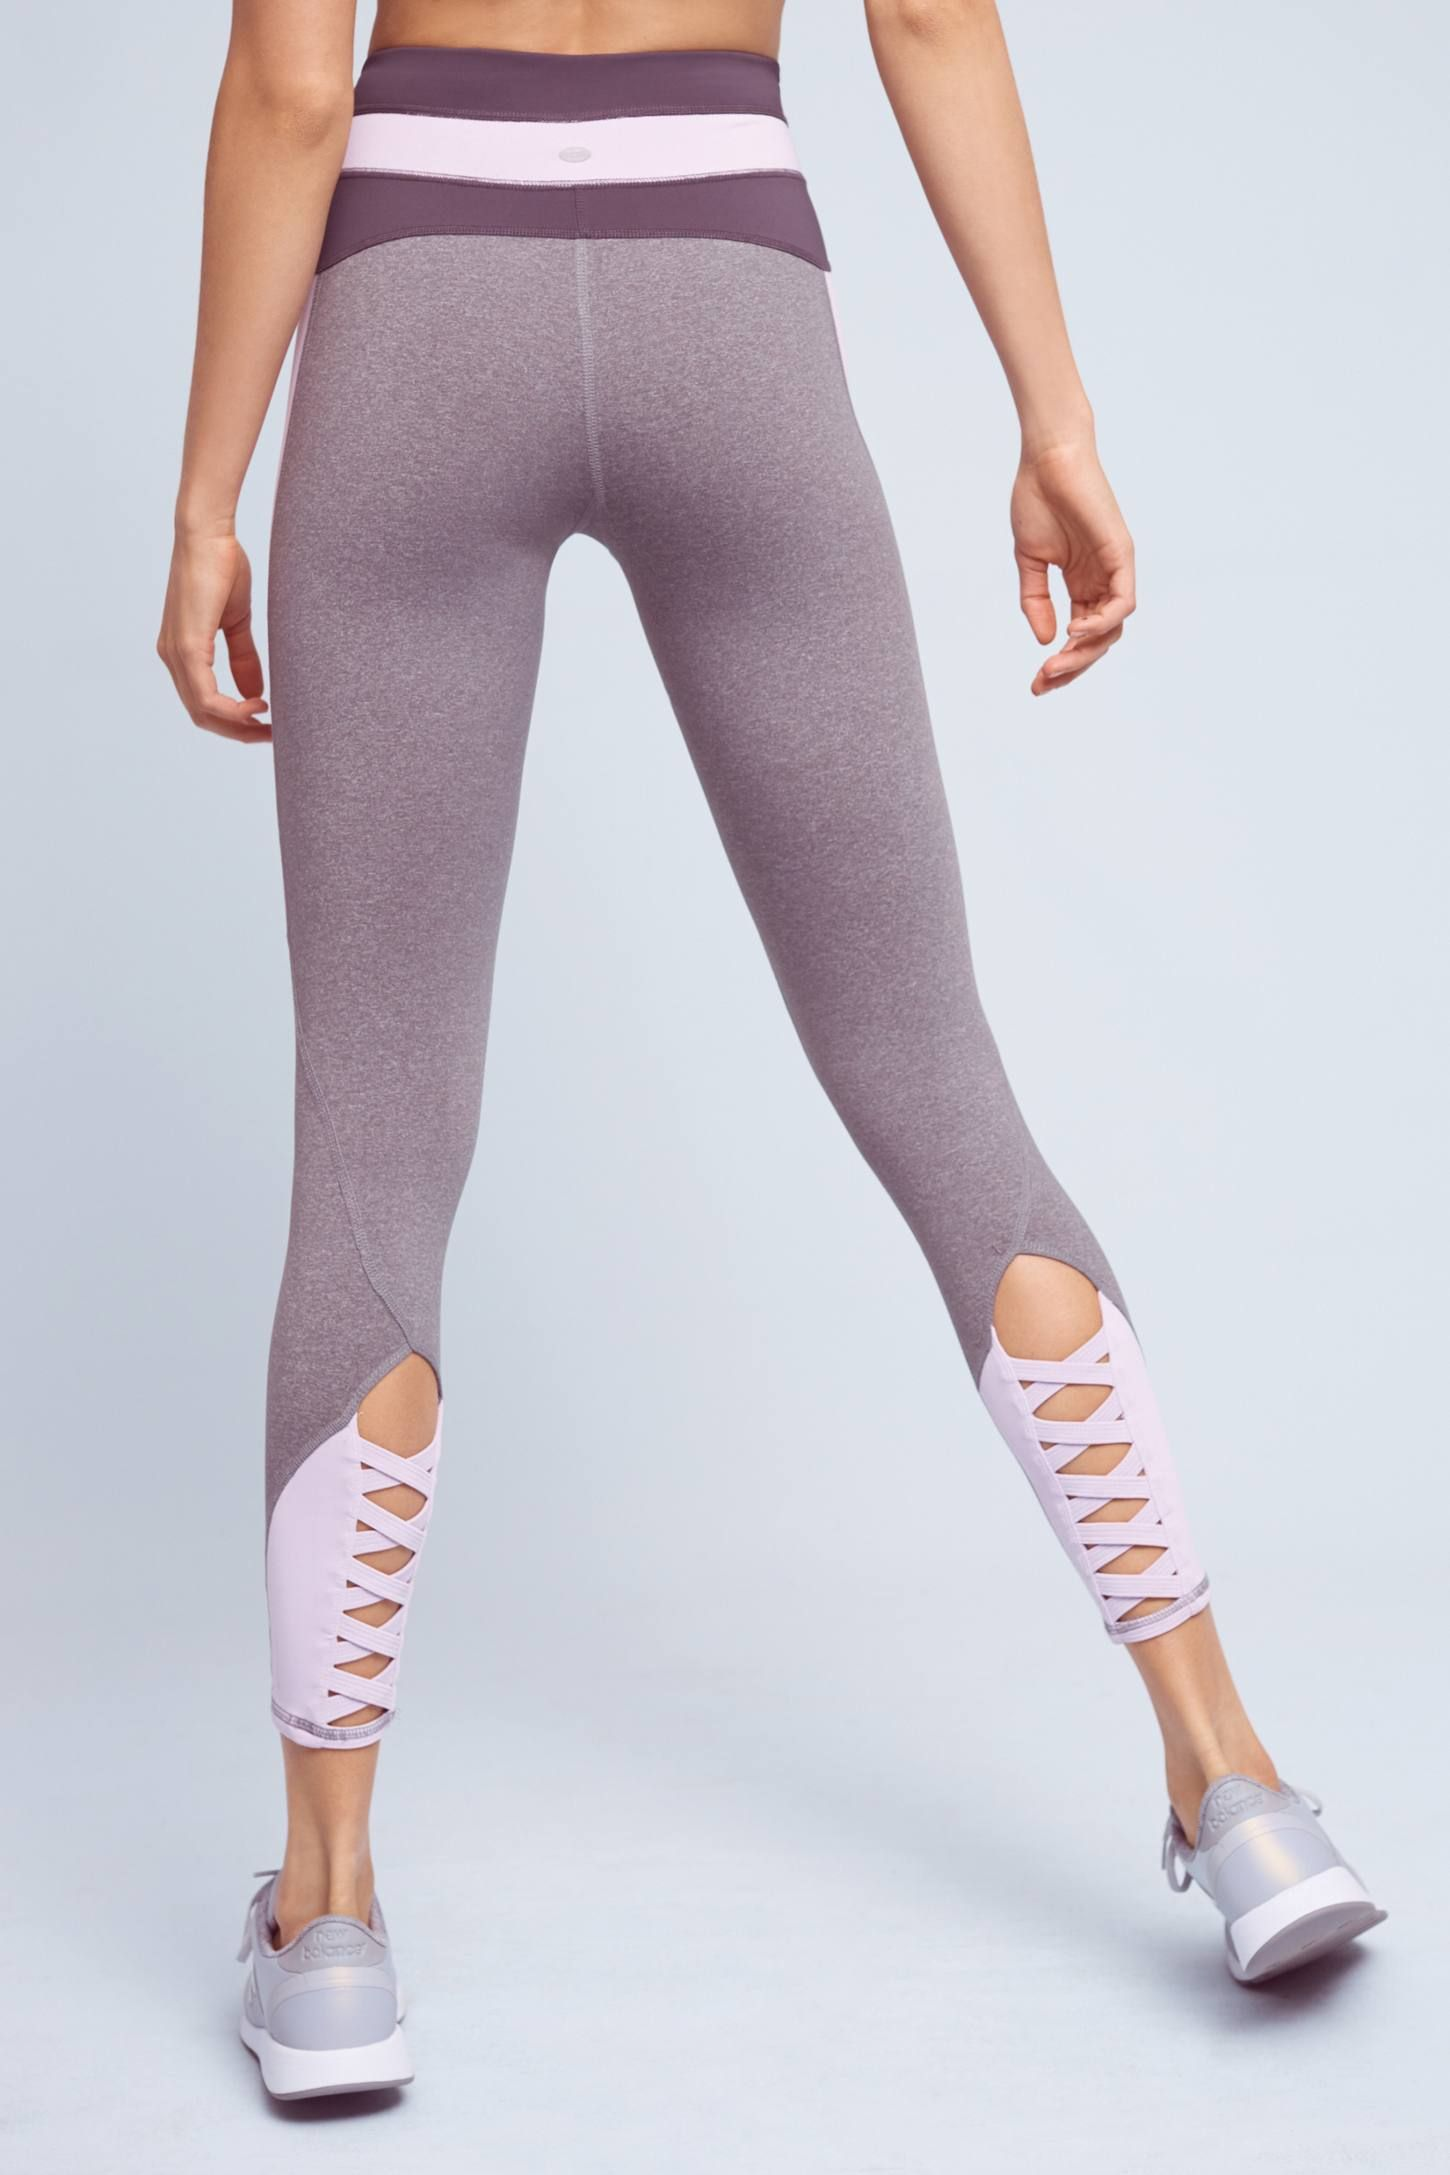 Slated Colorblock Leggings Workout attire, Athletic